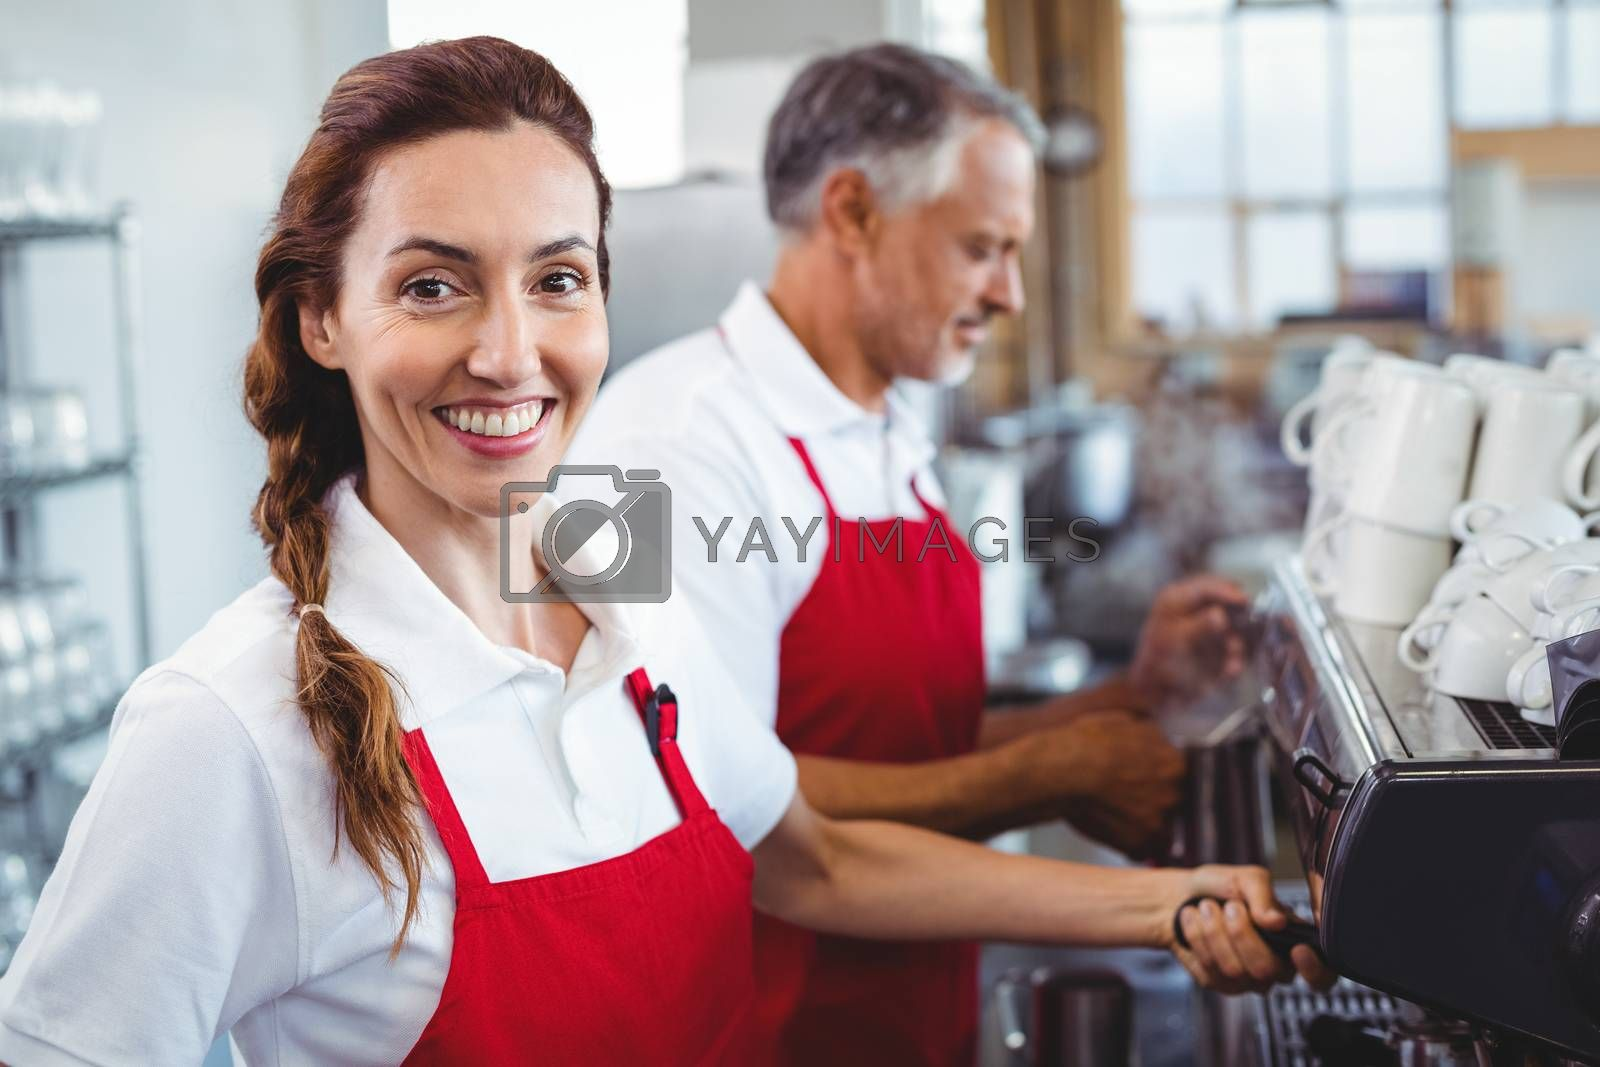 Royalty free image of Smiling barista using the coffee machine with colleague behind by Wavebreakmedia